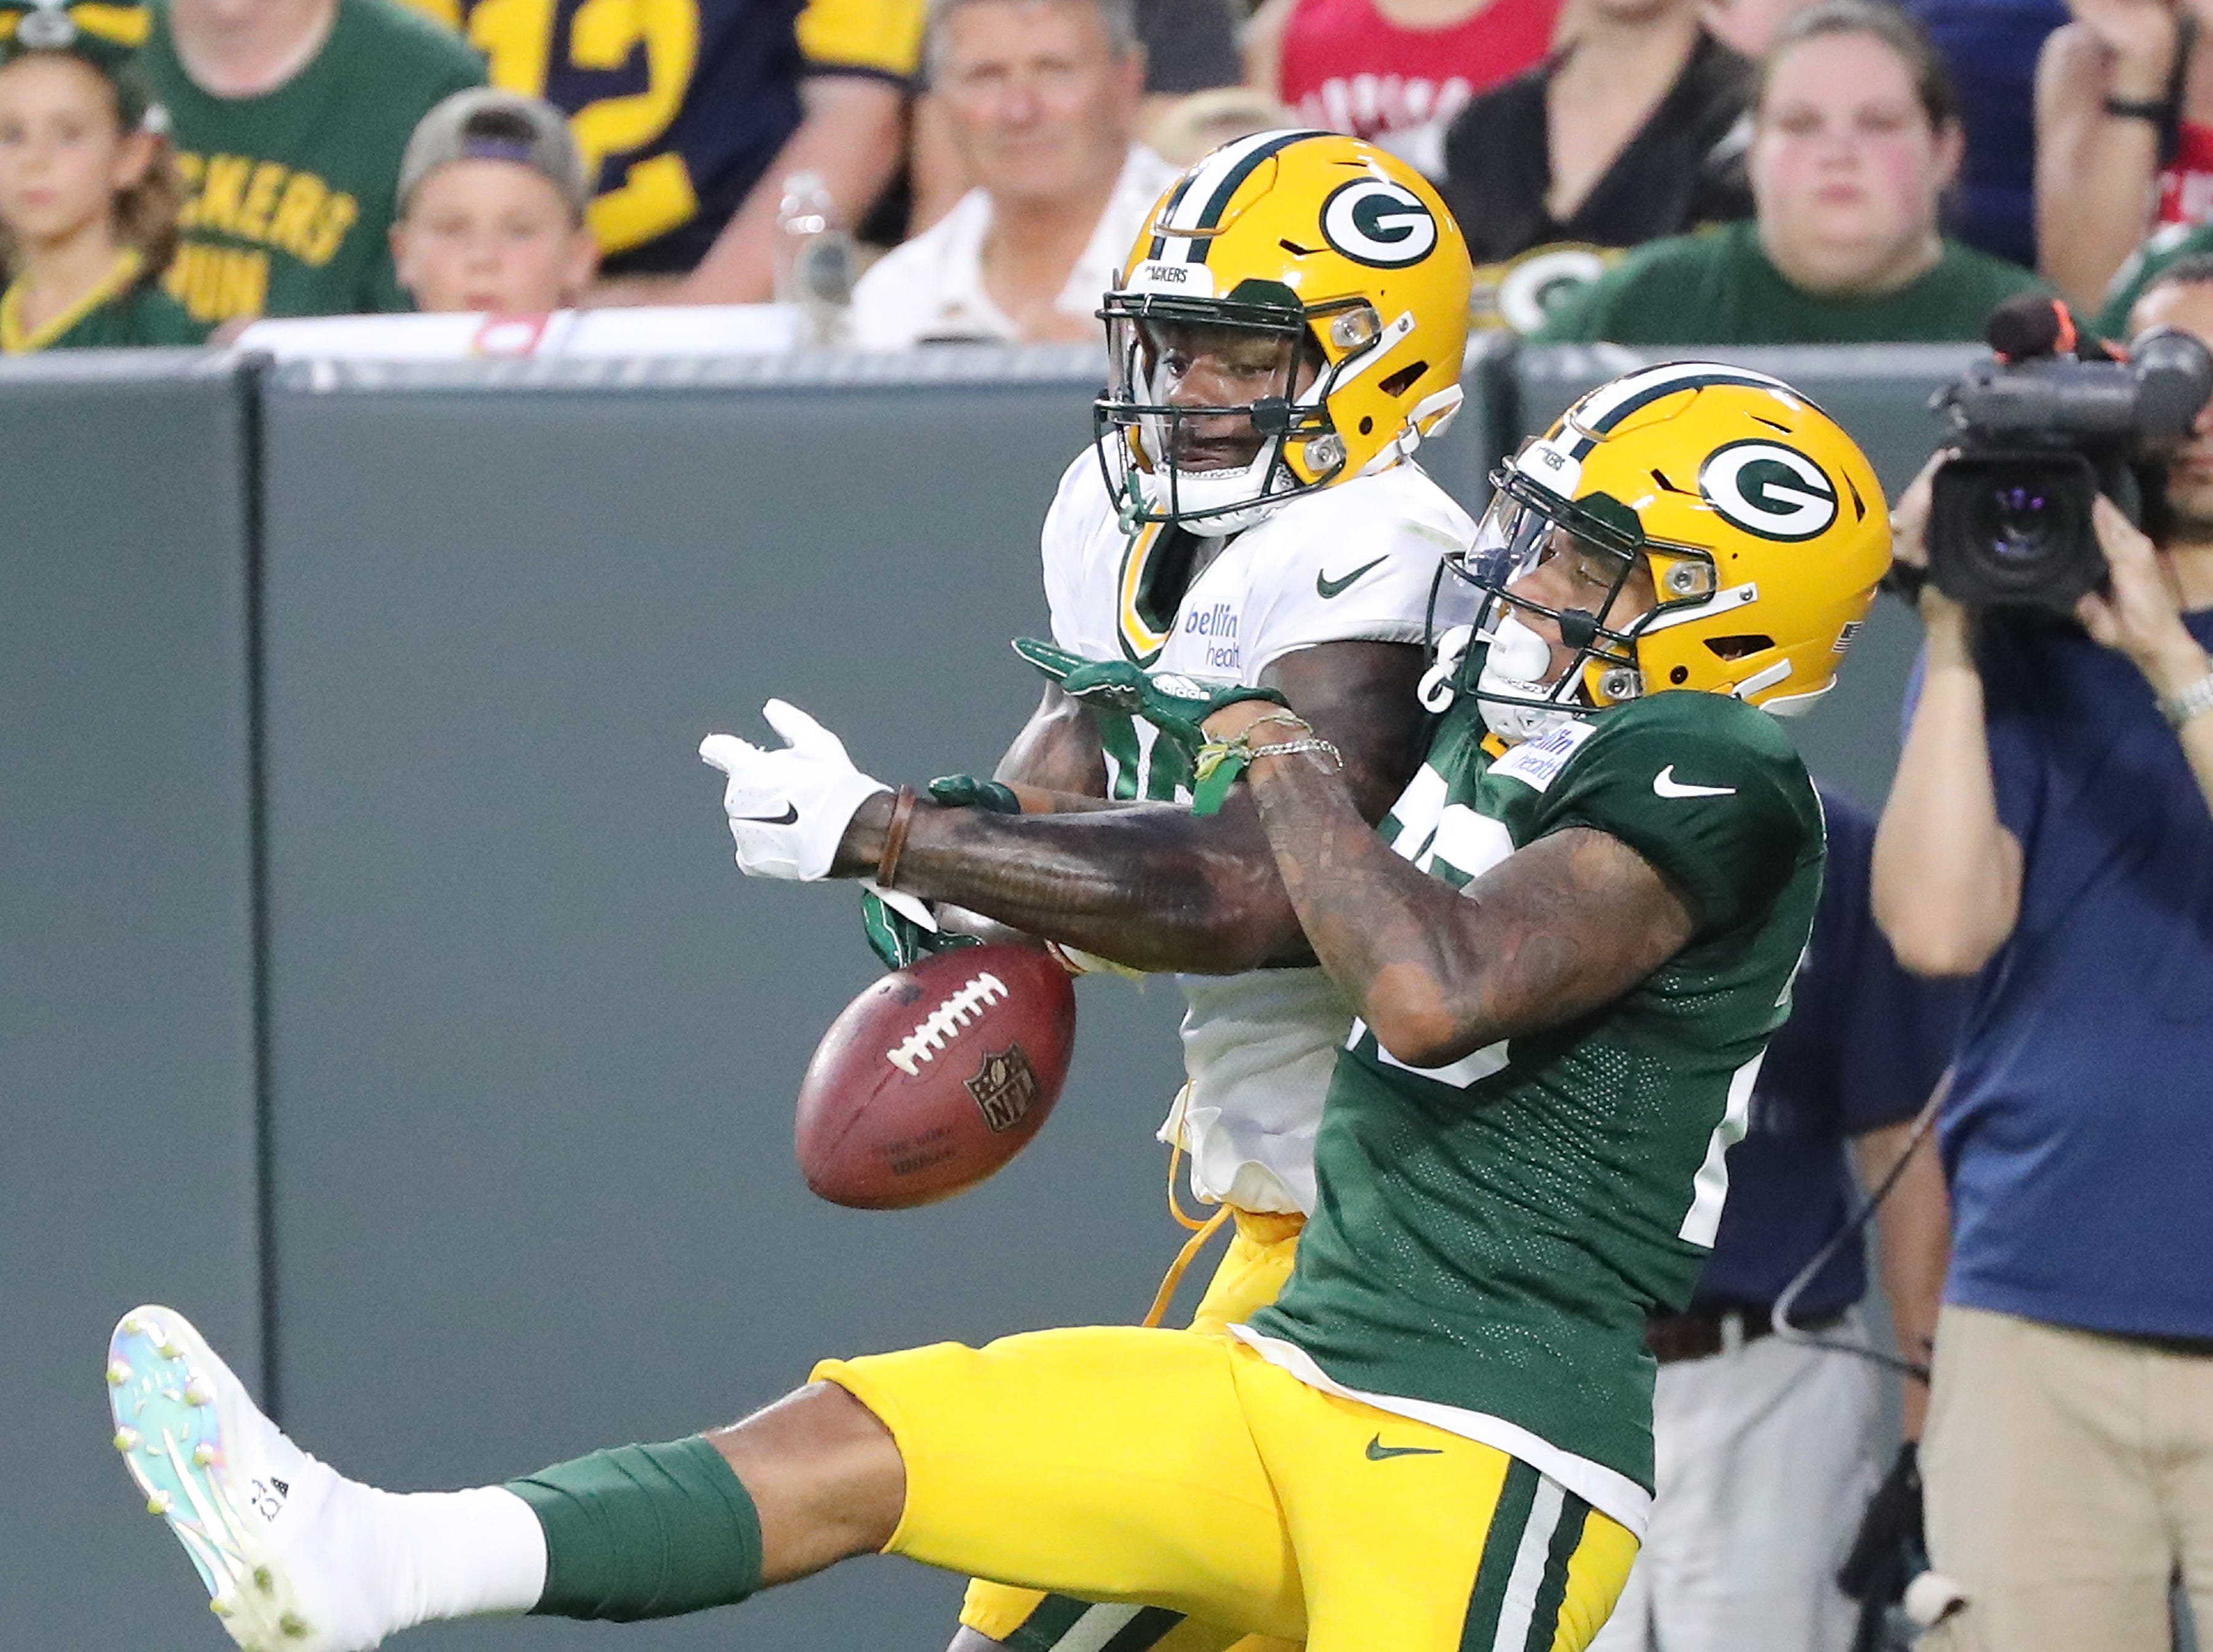 Green Bay Packers cornerback Jaire Alexander (23) breaks up a pass to wide receiver J'Mon Moore (82) during Green Bay Packers Family Night  Saturday, August 4, 2018 at Lambeau Field in Green Bay, Wis.,